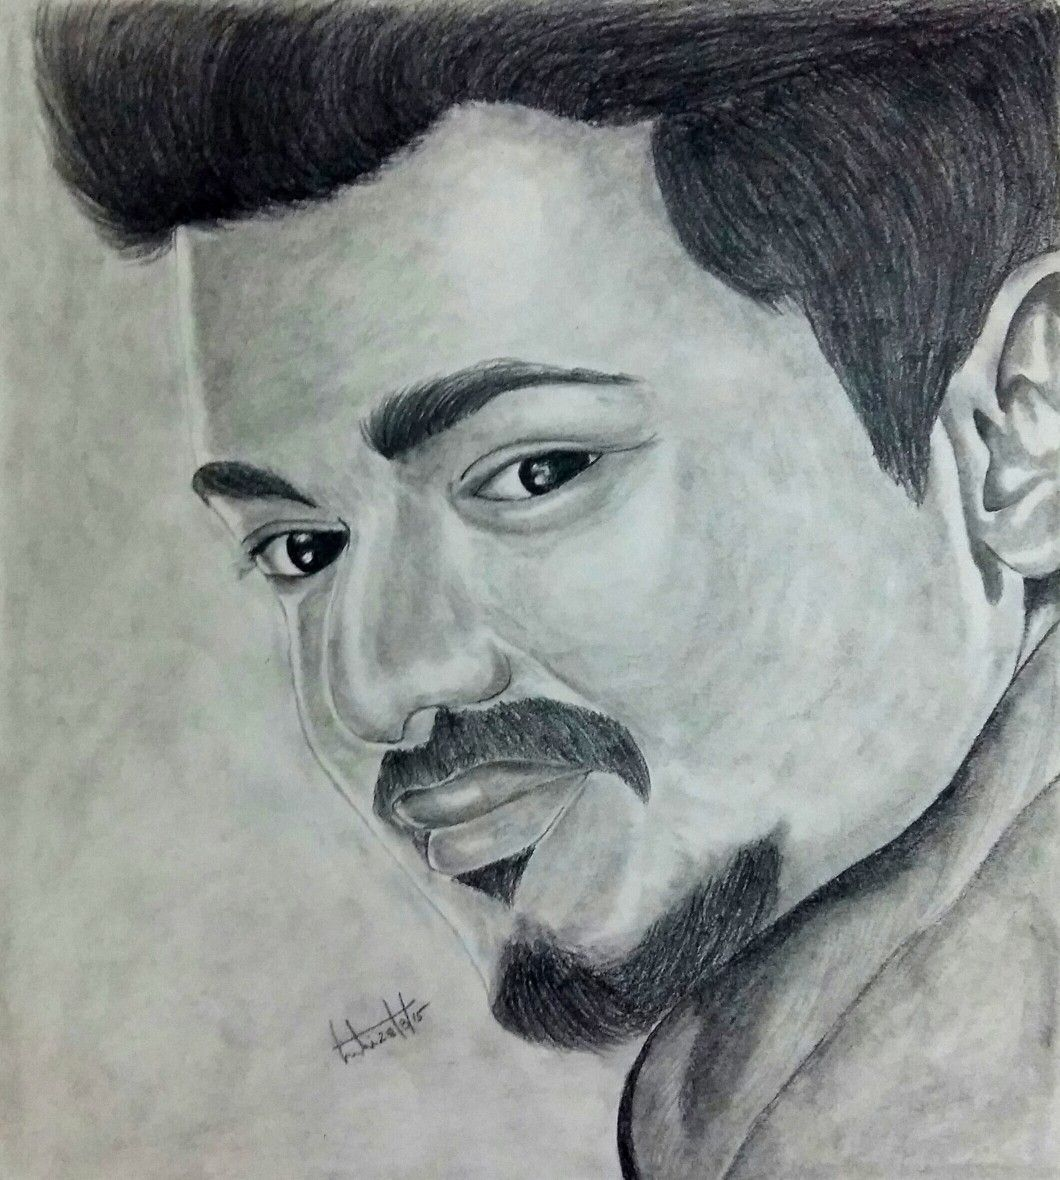 Pin by Thenmozhi Muthu on Pencil Sketch | Sketches, Pencil